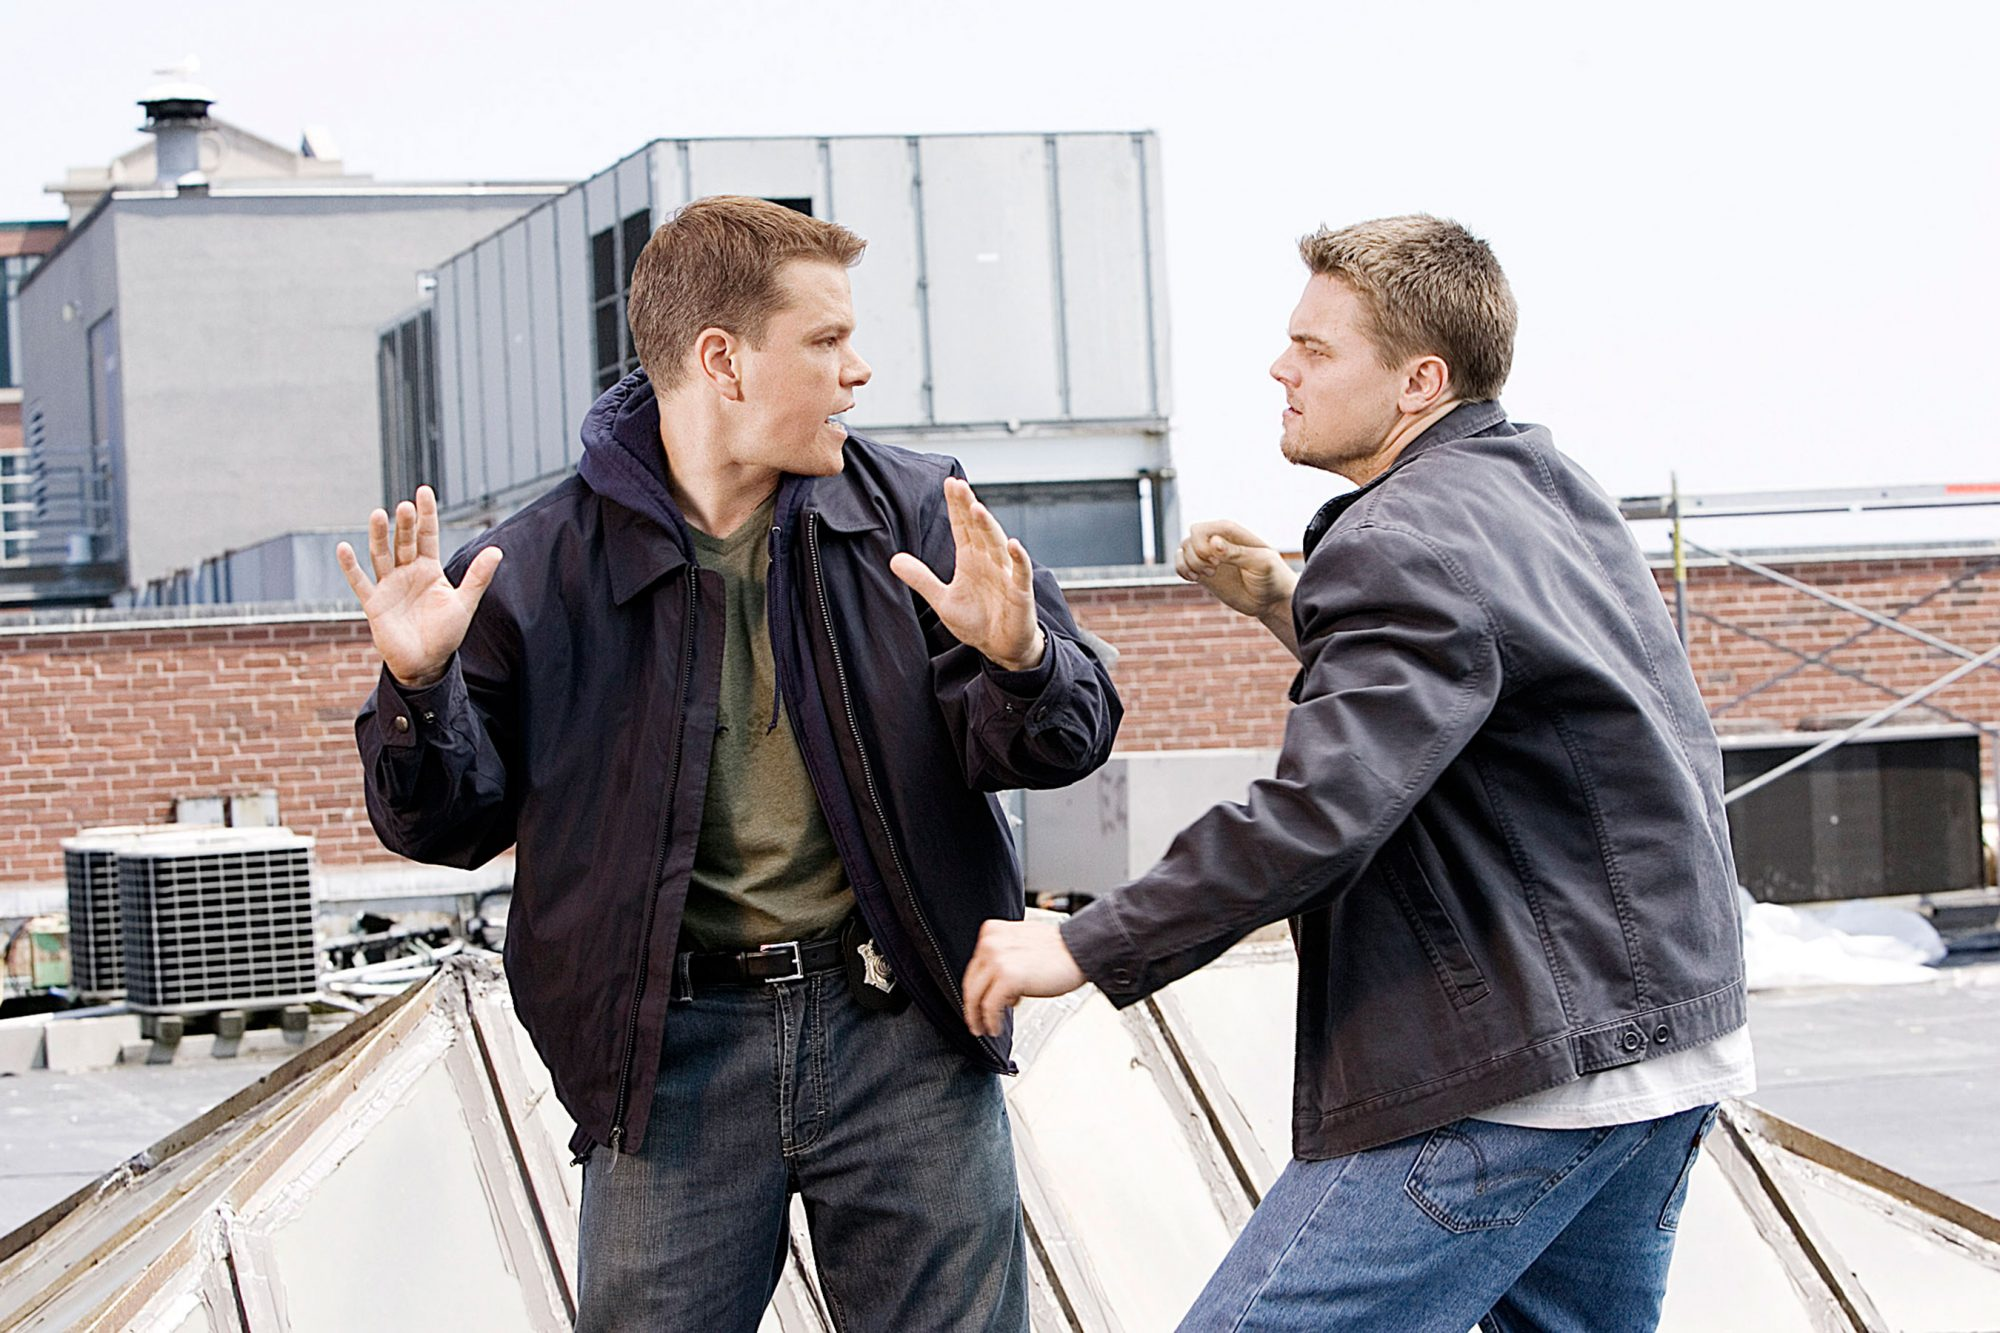 THE DEPARTED, Matt Damon, Leonardo Di Caprio, 2006, ©Warner Bros./courtesy Everett Collection